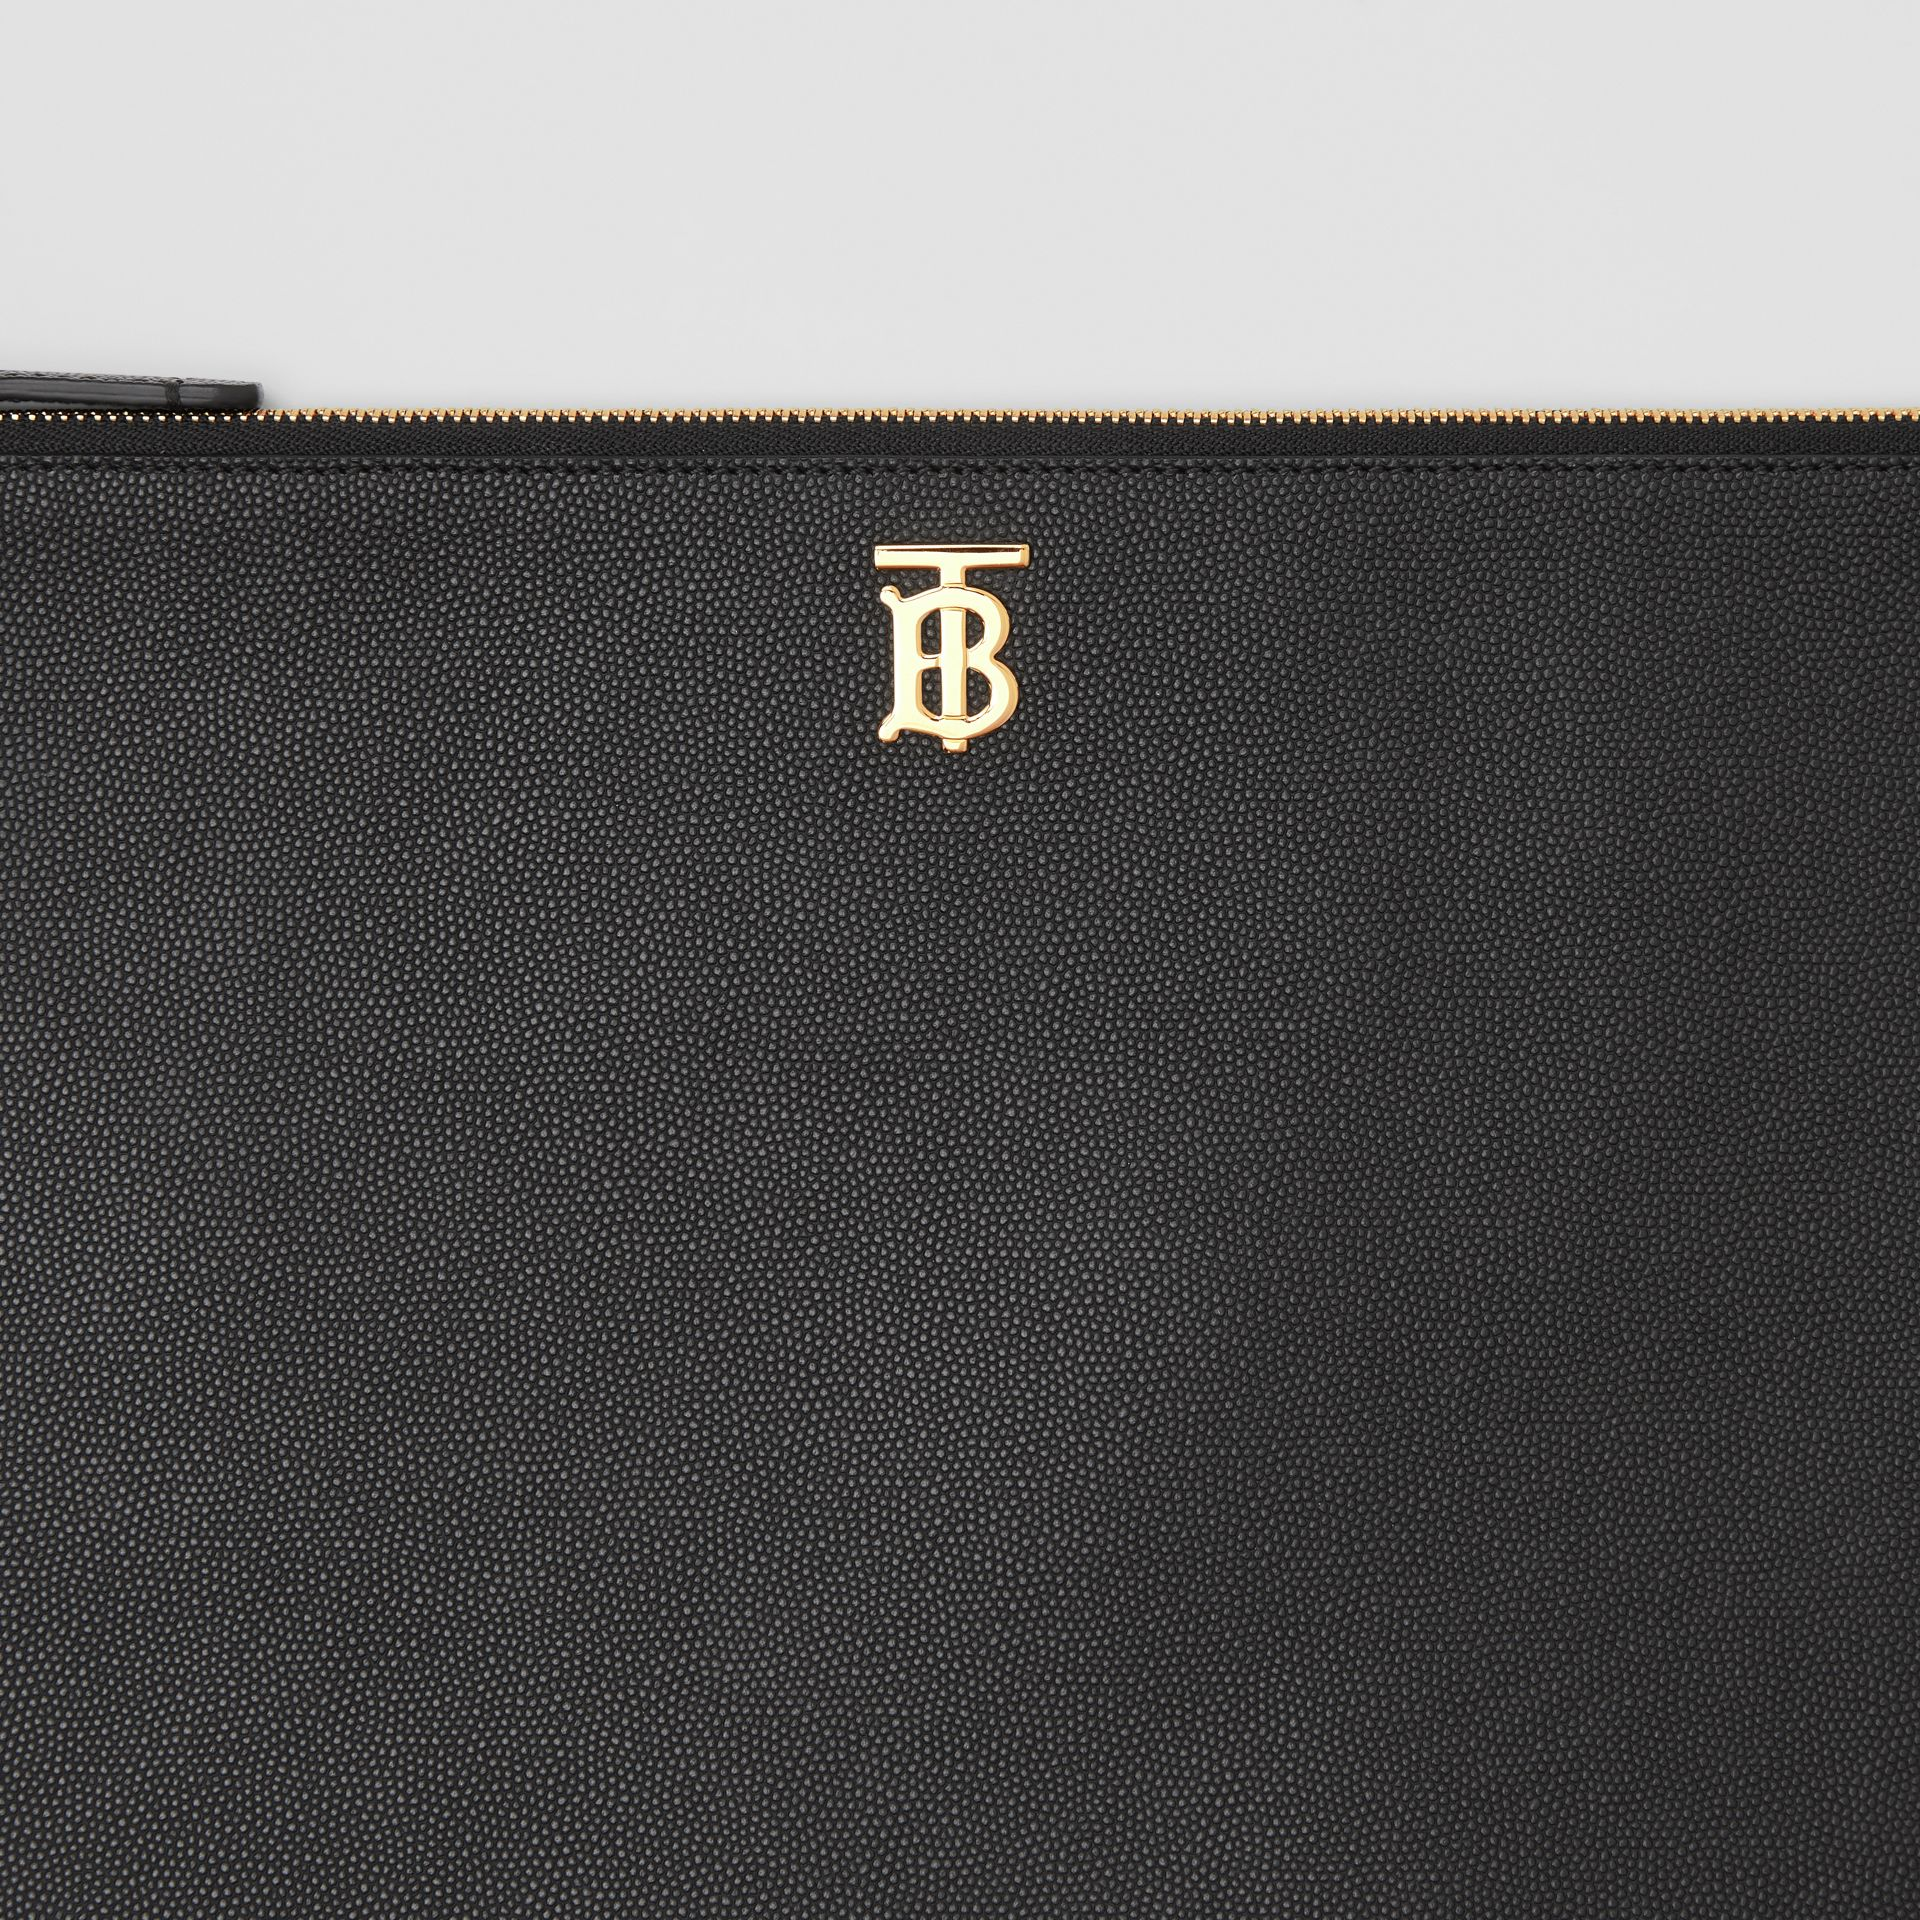 Monogram Motif Grainy Leather Pouch in Black - Women | Burberry - gallery image 1